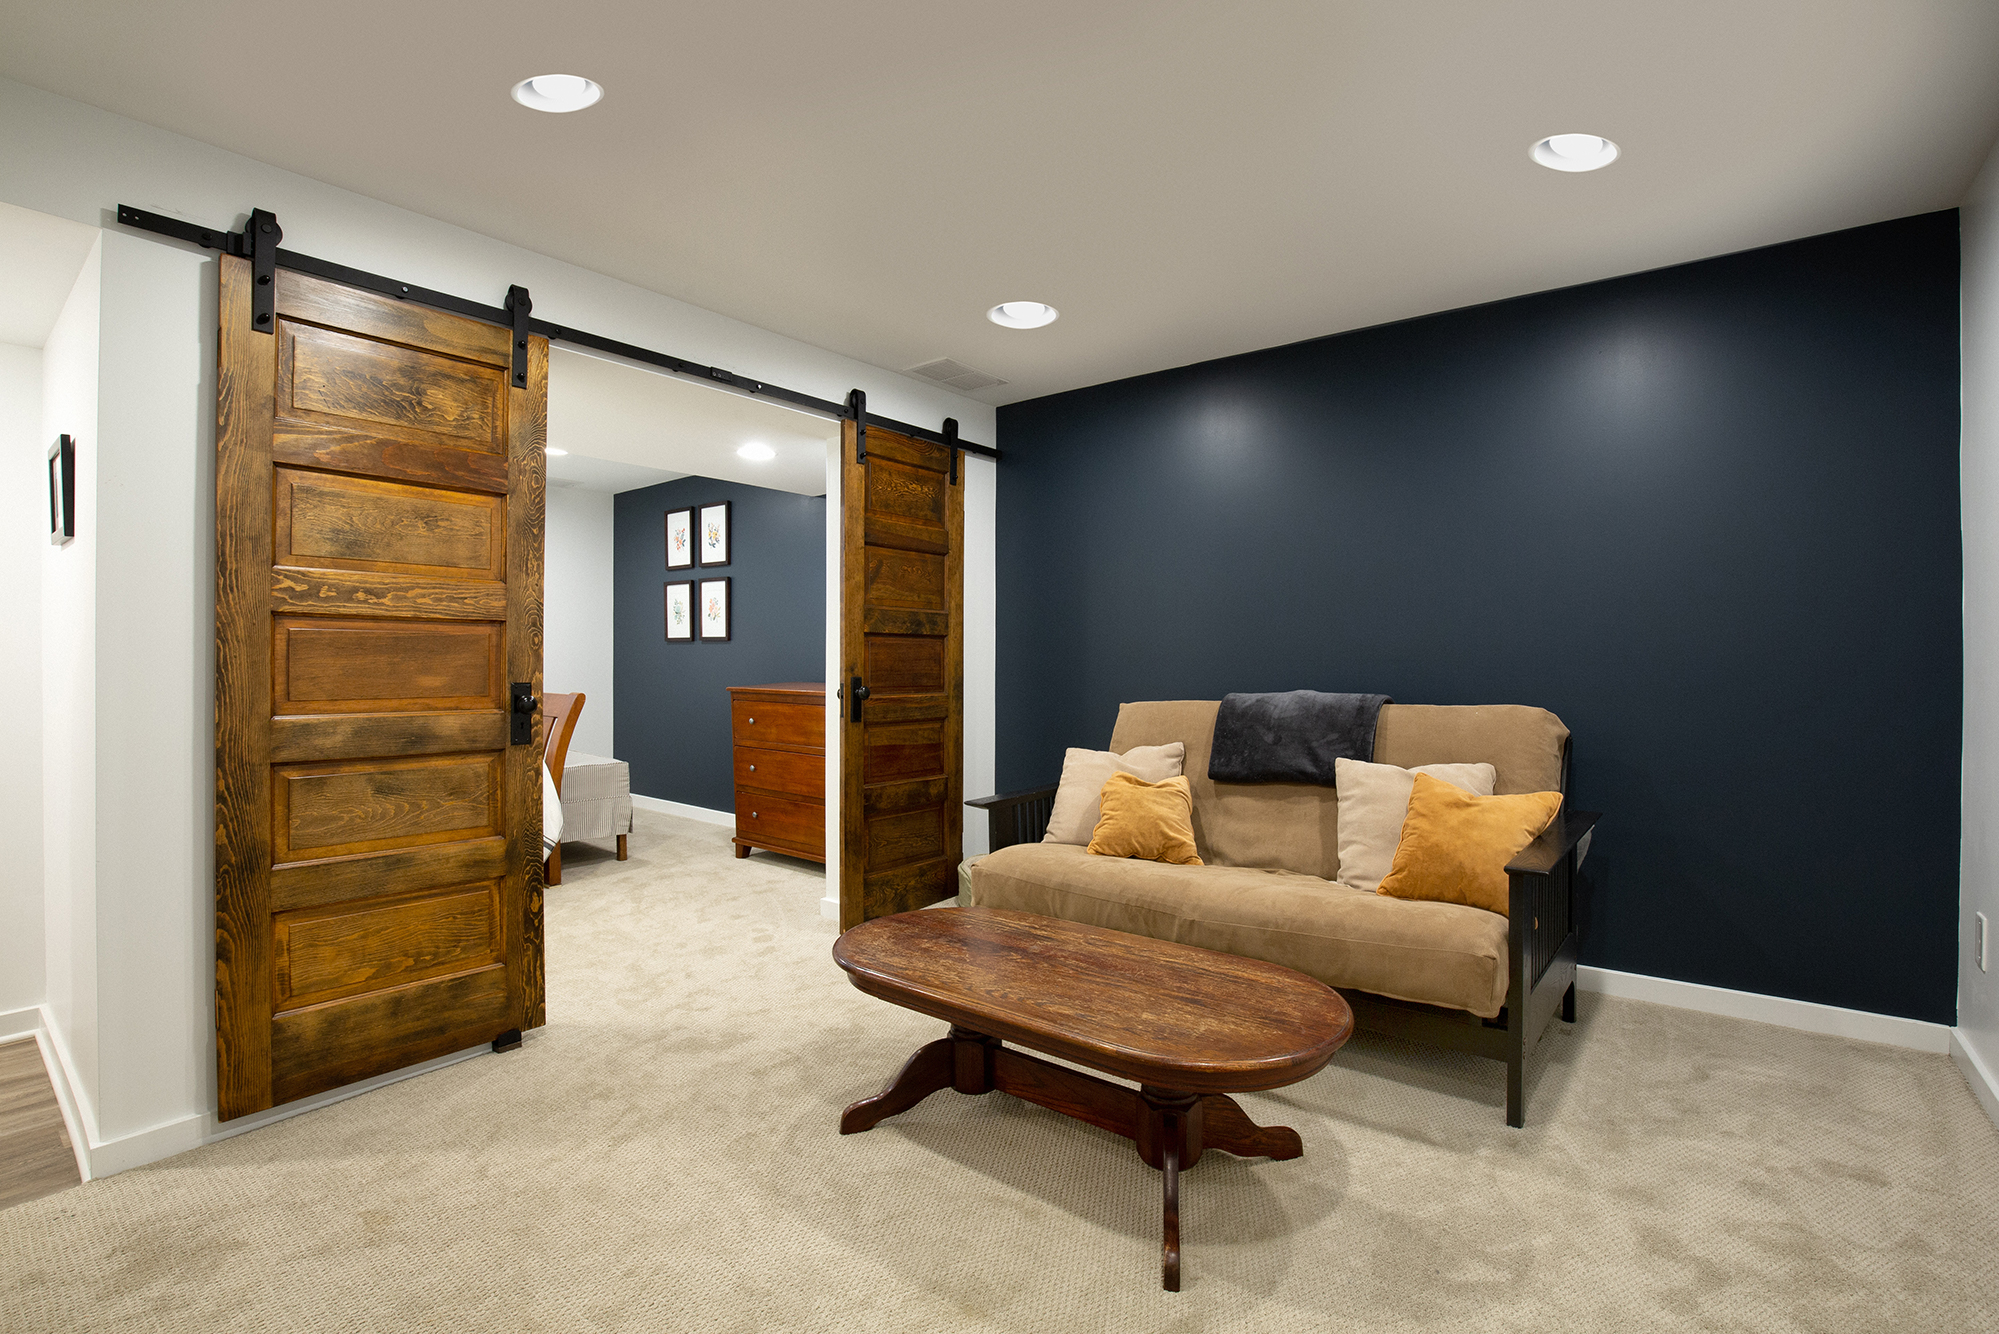 Finished basement with sliding wooden doors